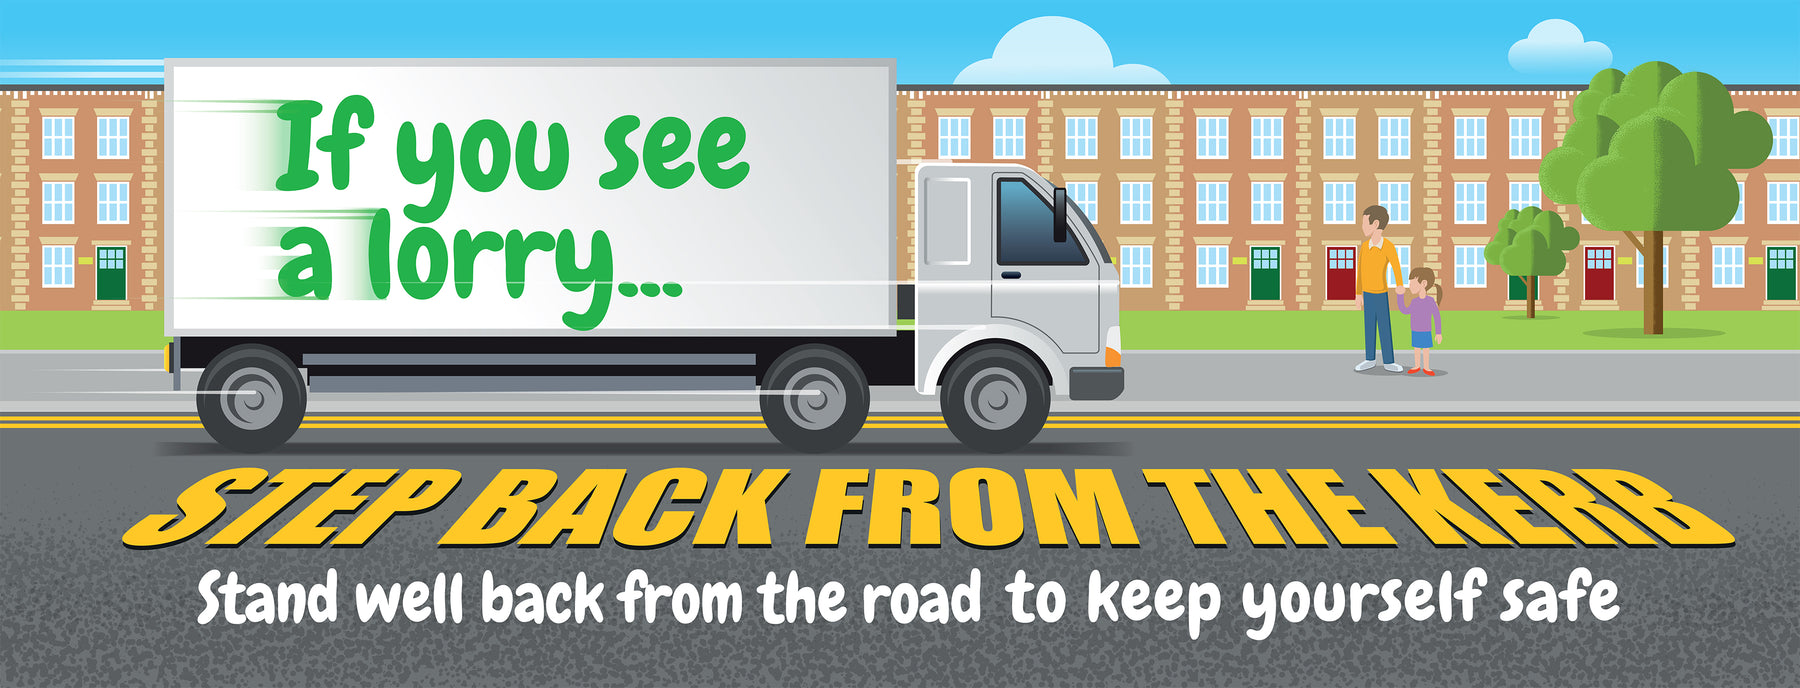 If you see a lorry banner